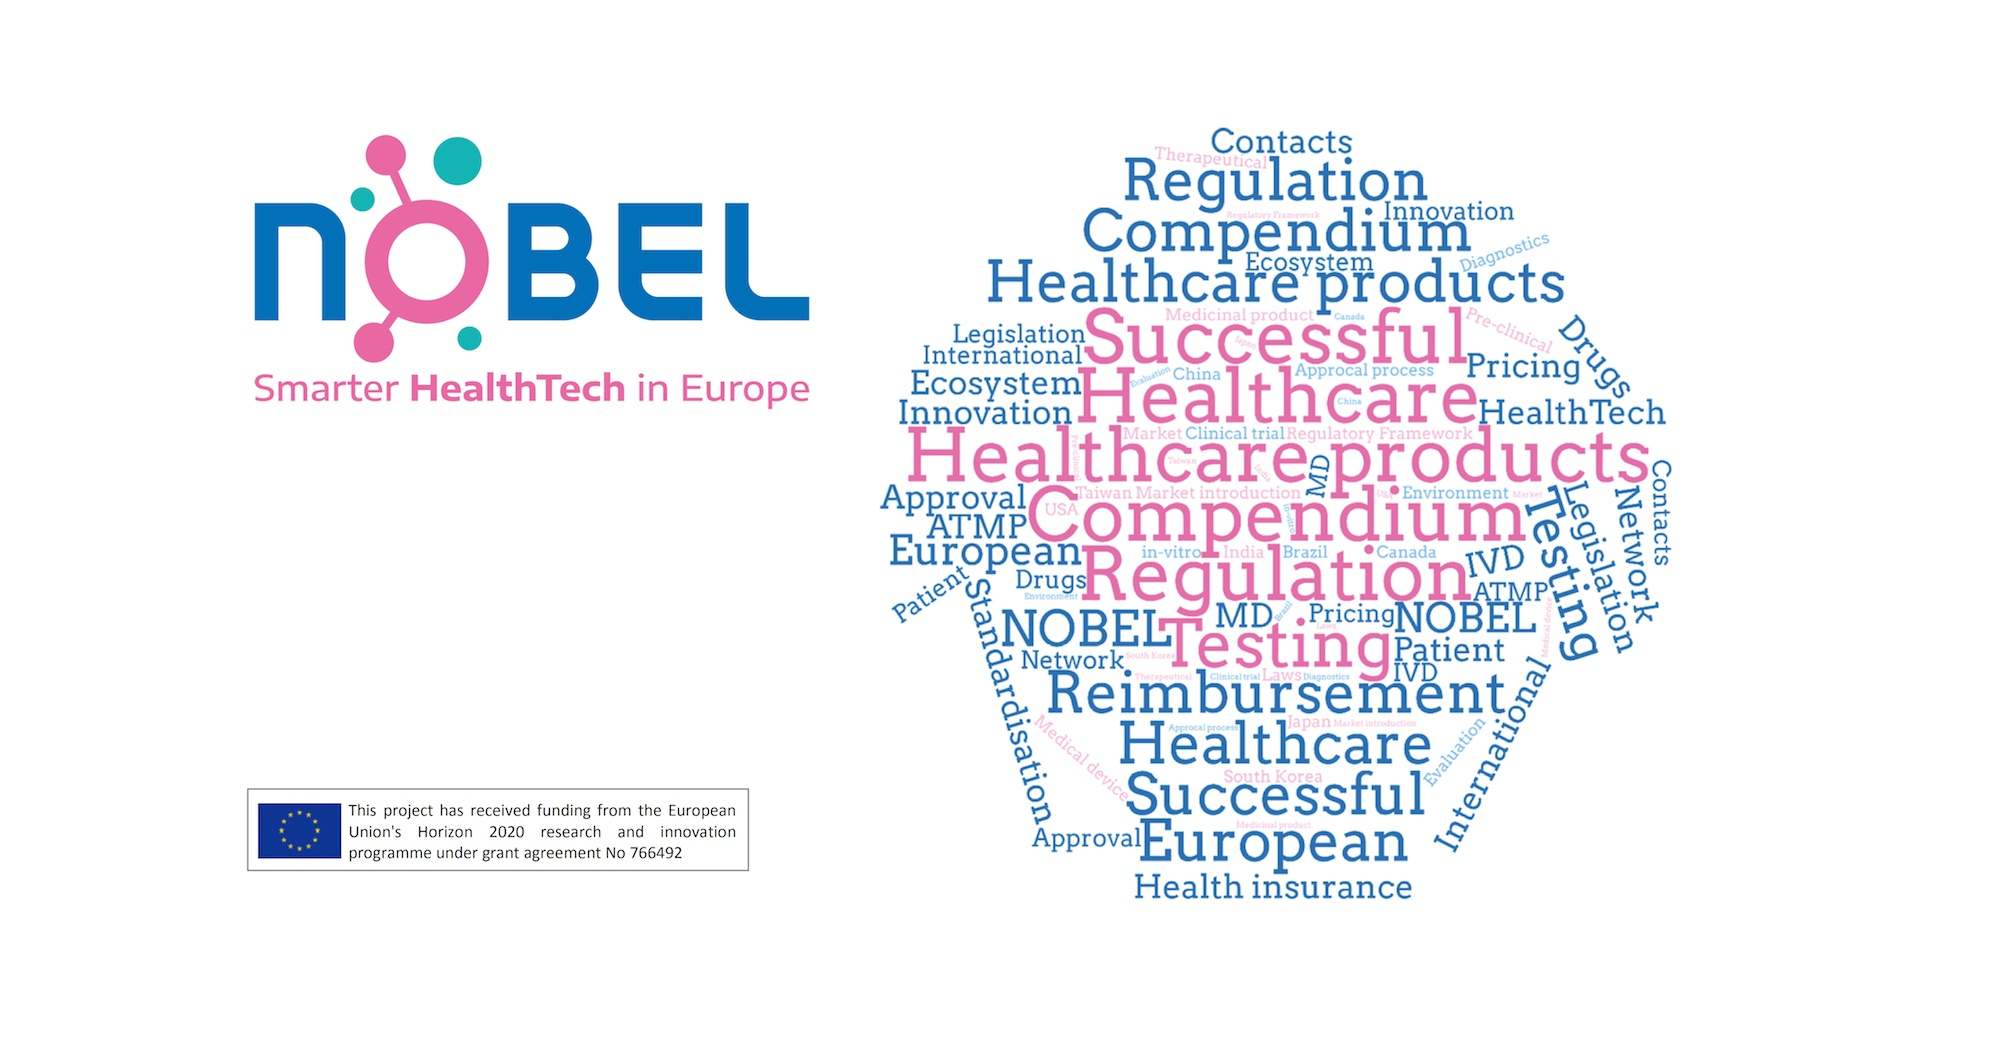 The NOBEL Project releases a compendium for testing, regulation, pricing and reimbursement of healthcare products.